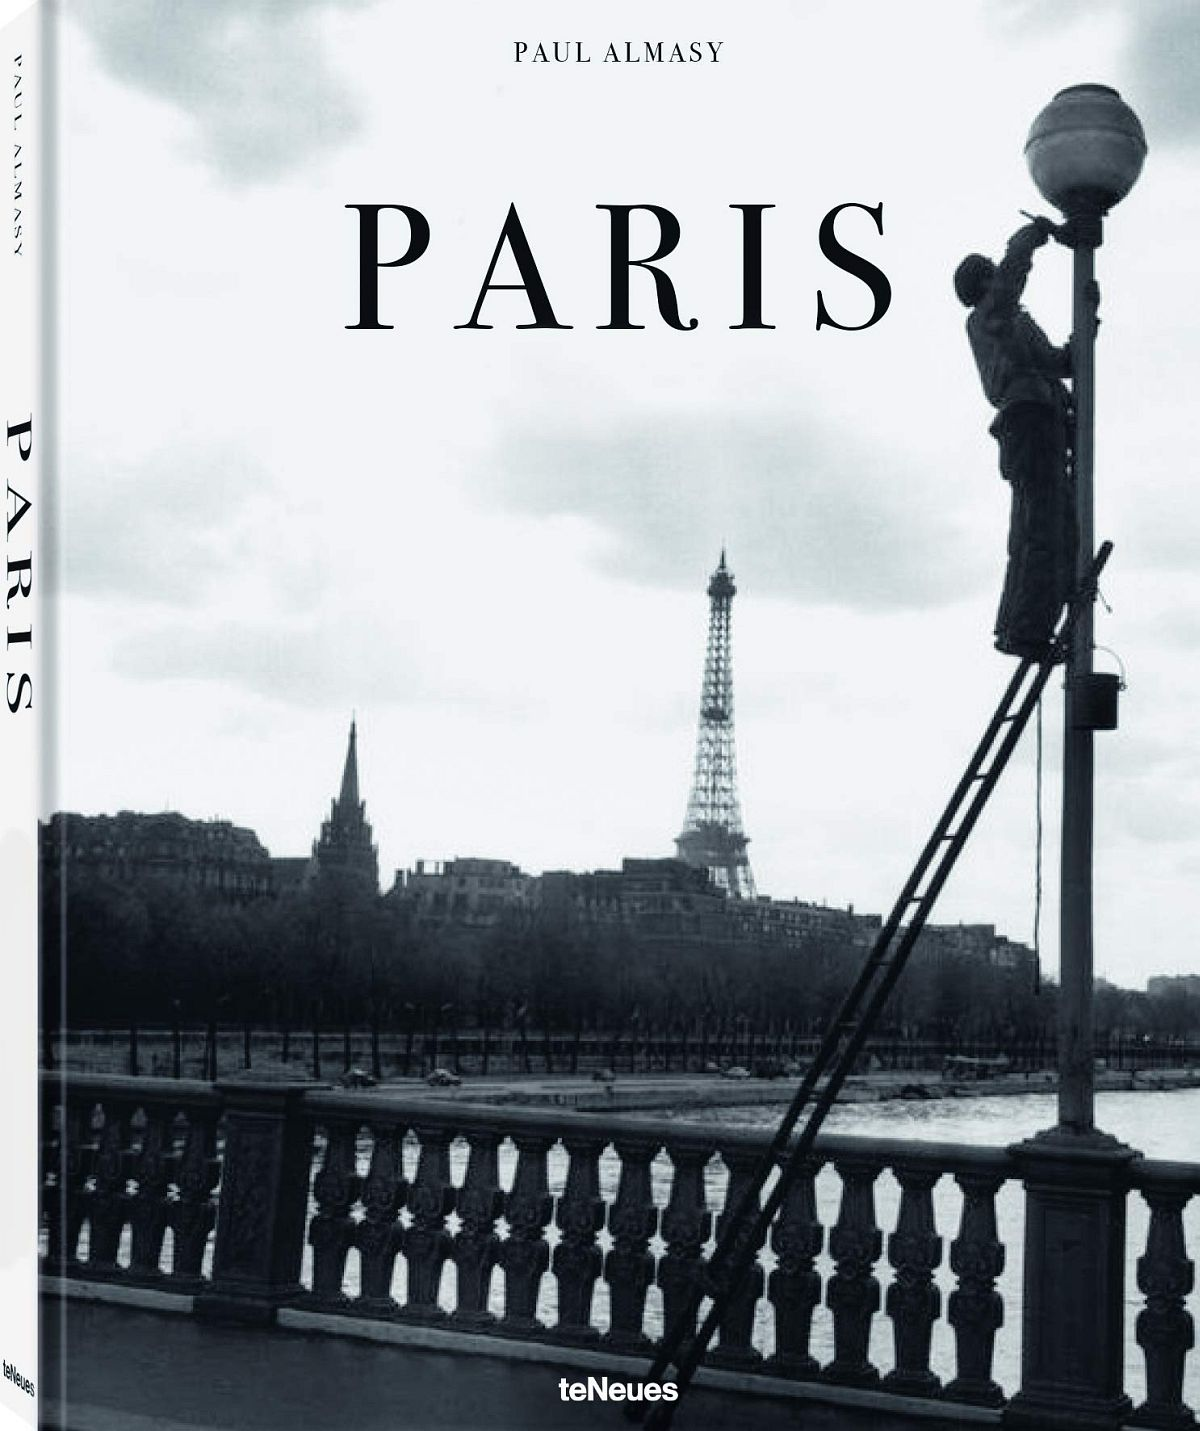 Paris: The City of Light in the 50s & 60s